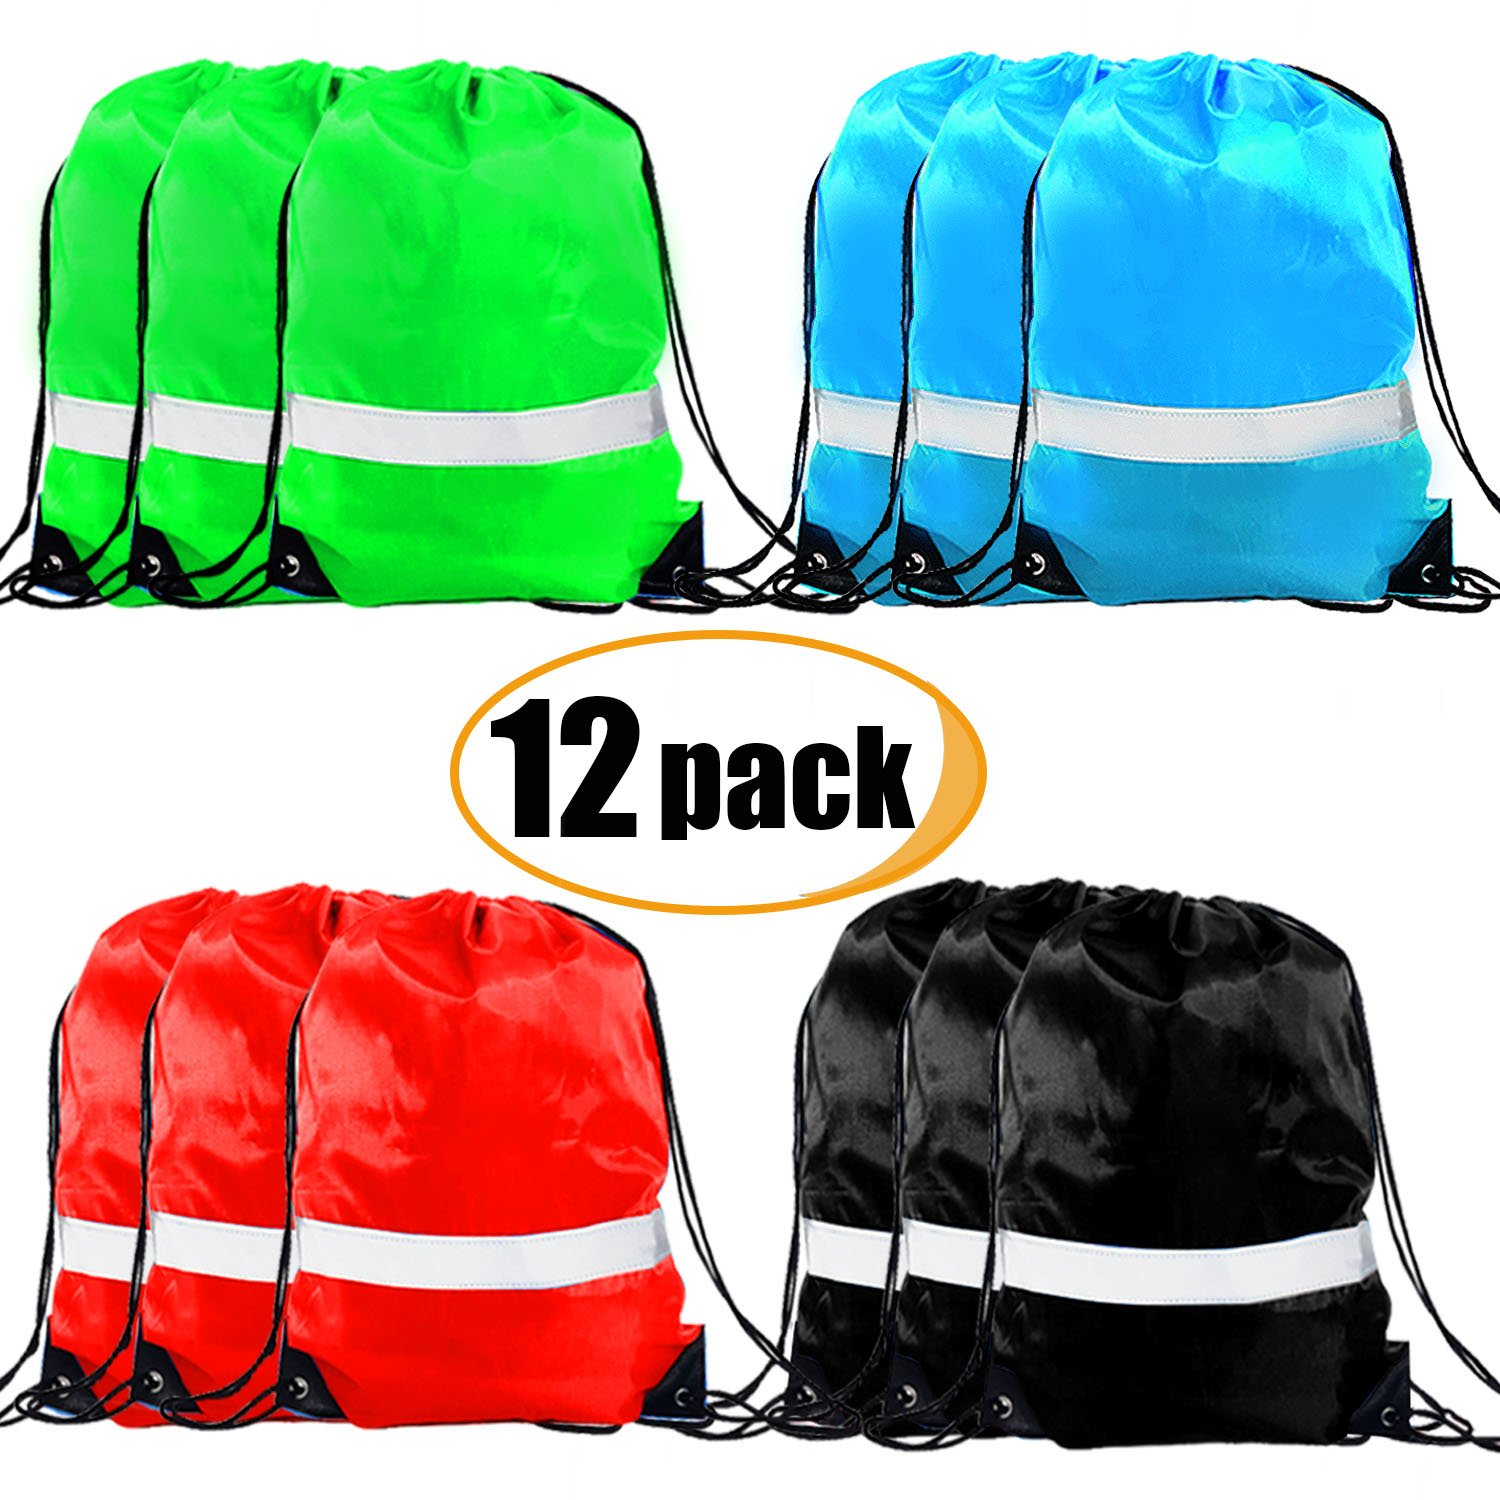 851f8ff58e8 Get Quotations · Drawstring Backpack Bag - Cinch Sack Backpack String  Backpack Gym Bag Drawstring Bags